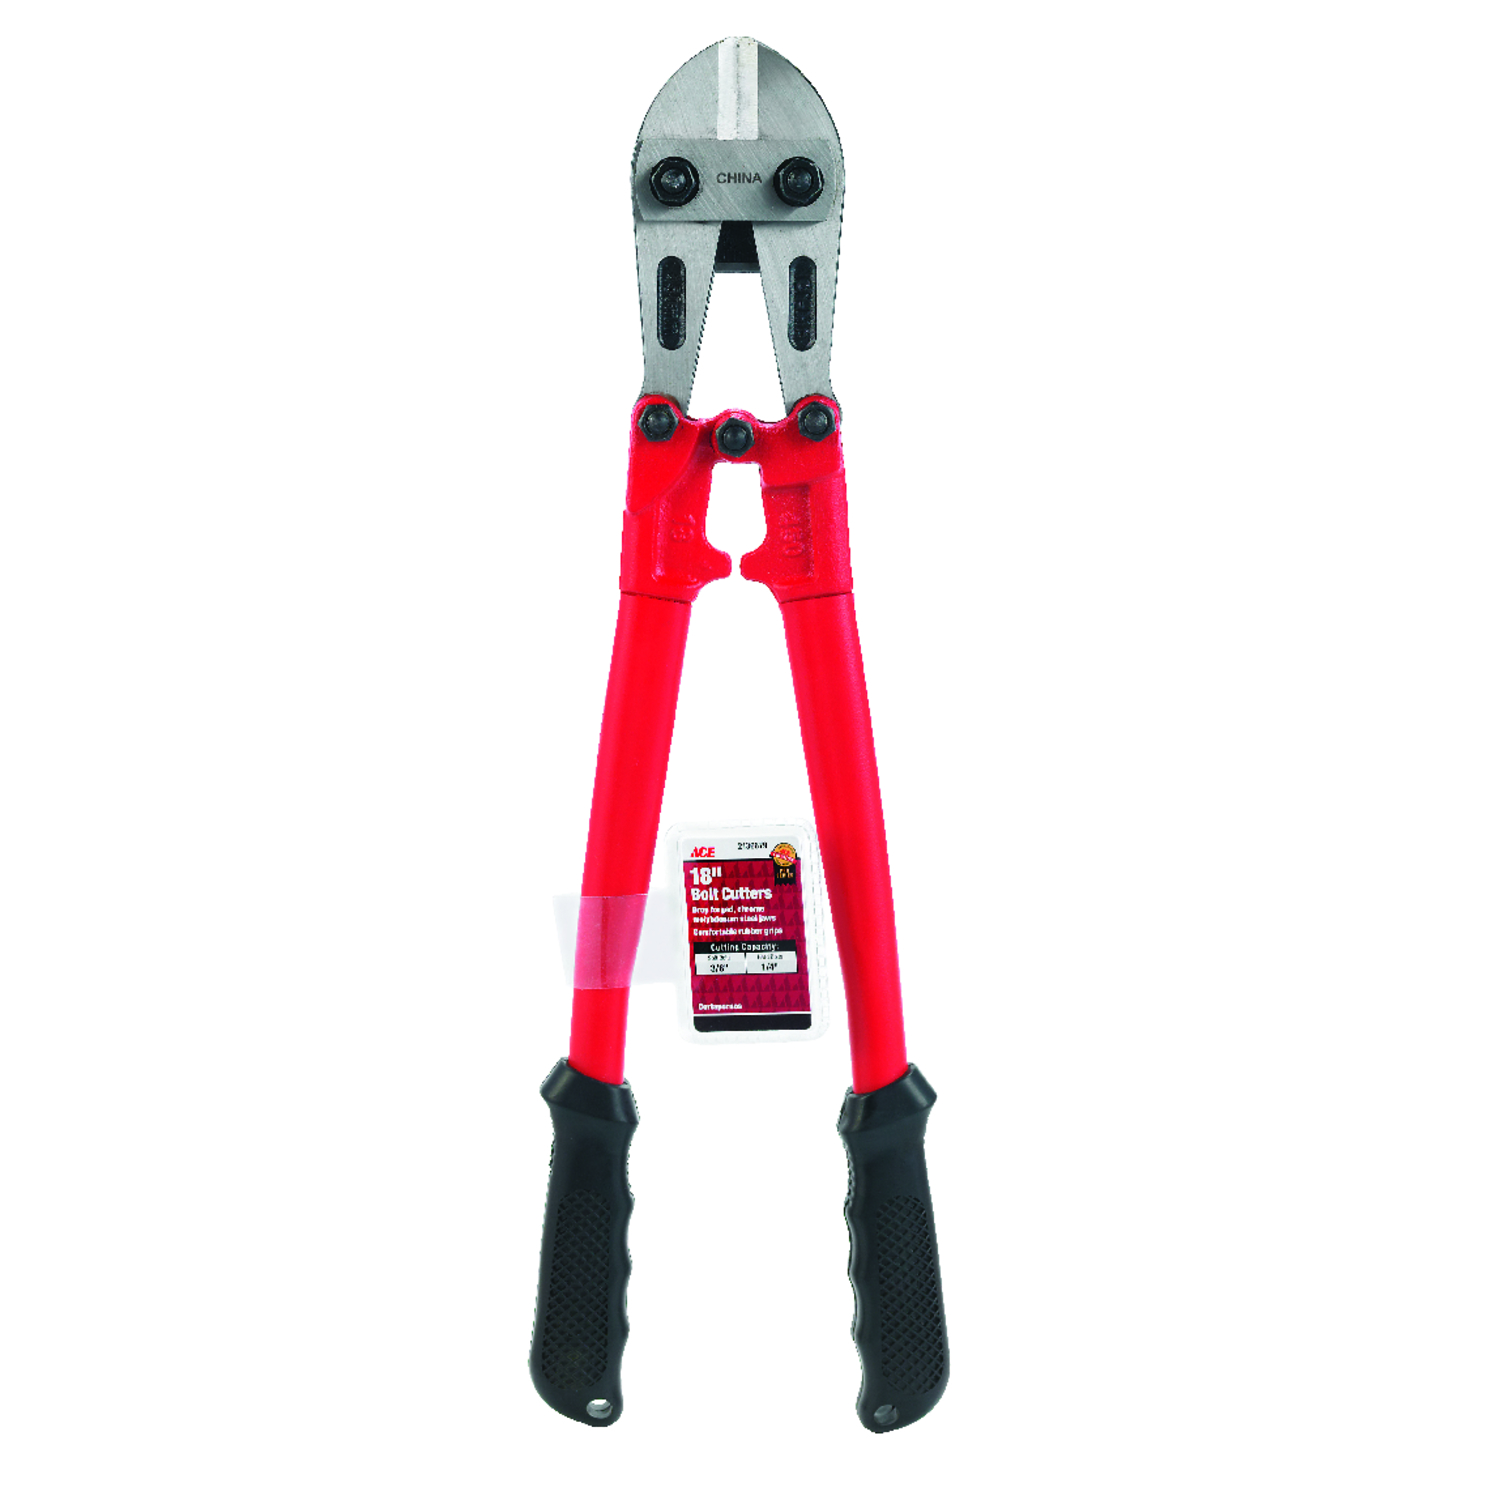 Ace Bolt Cutter 18 in. 1 pk - Ace Hardware